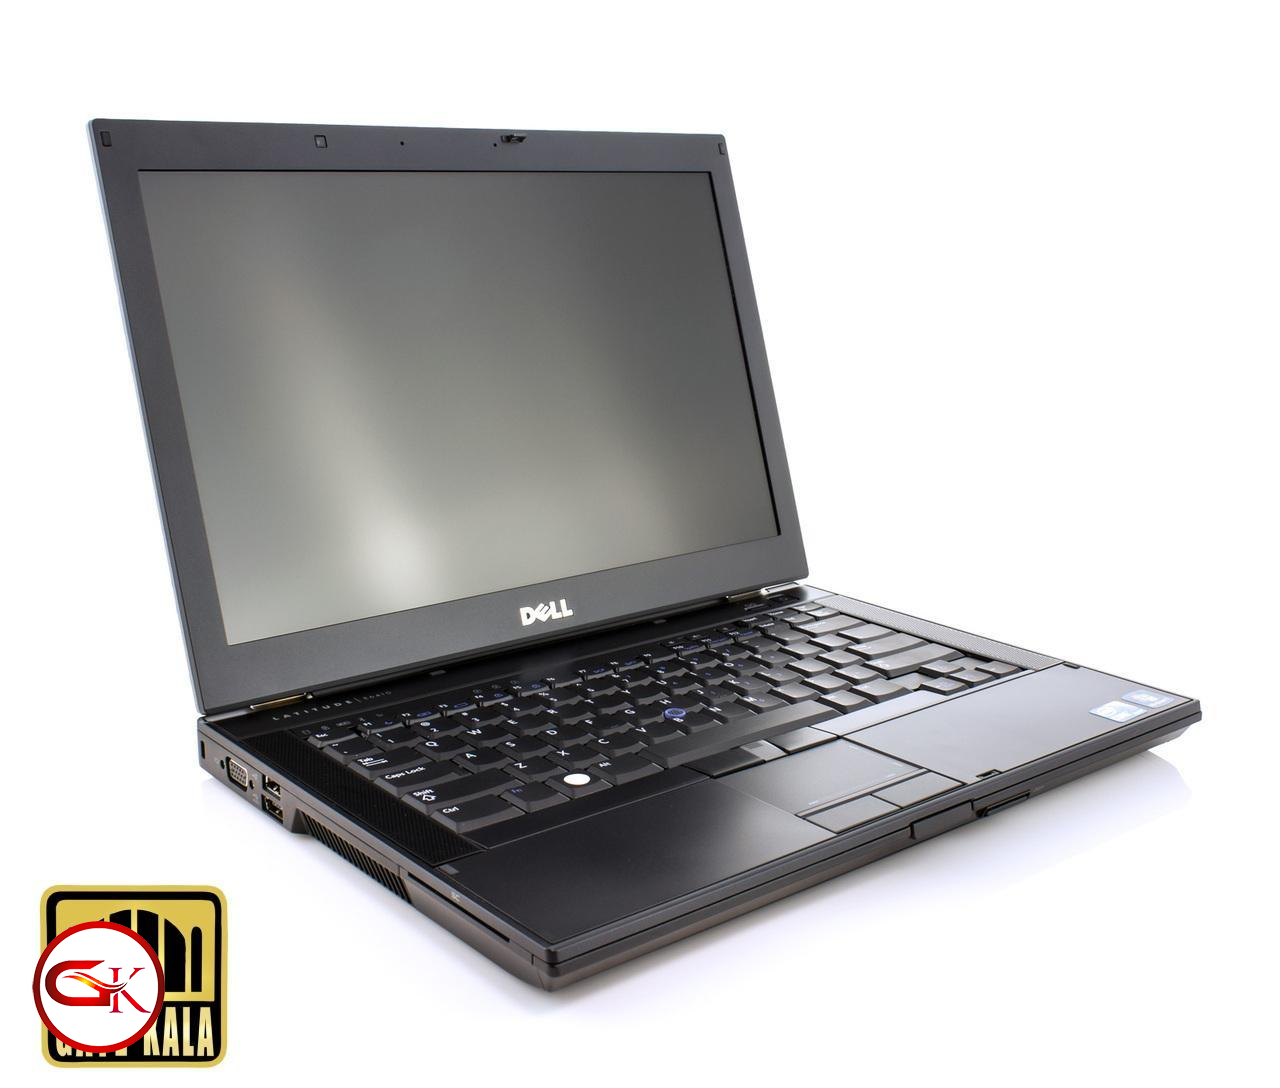 لپ تاپ دل Dell E6410 |CPU i7|RAM 4GB|HDD 320GB|Intel HD